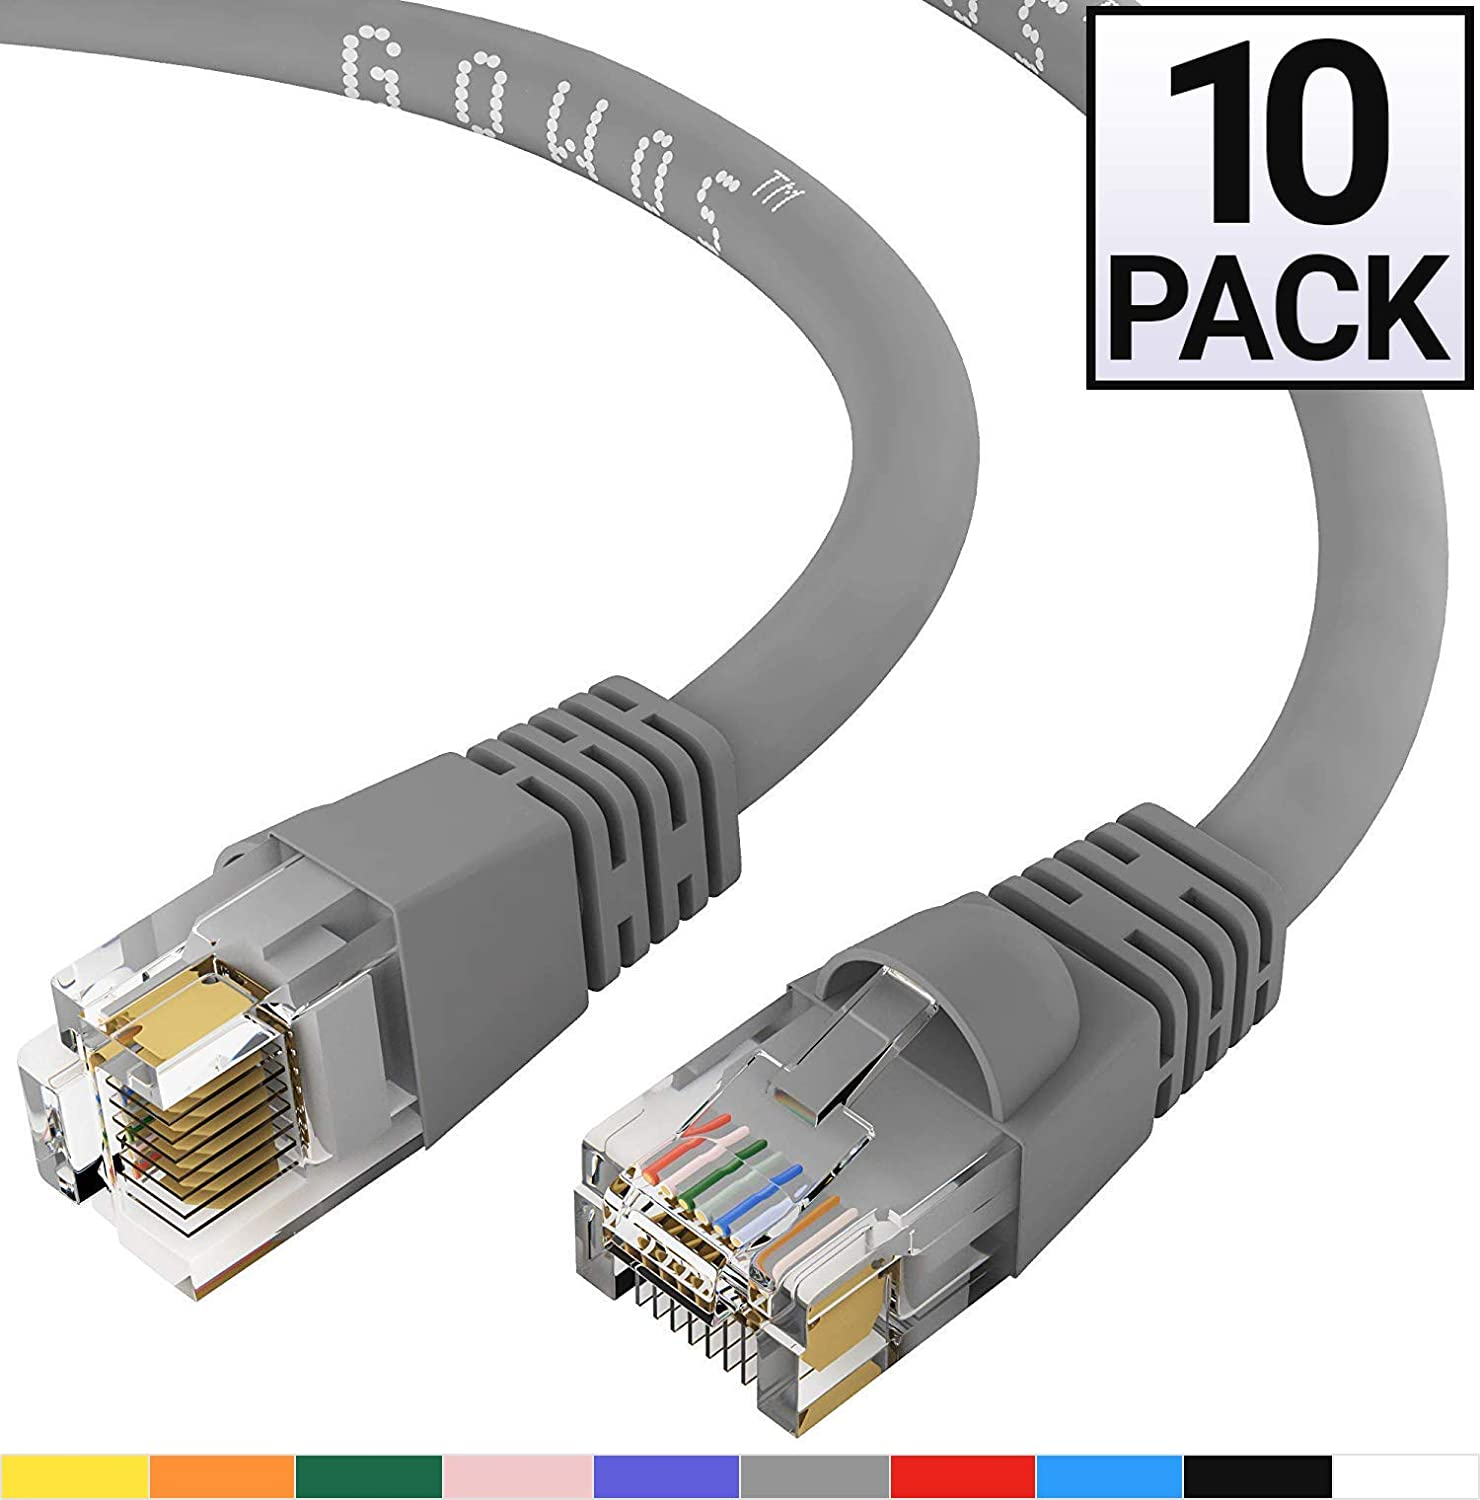 GOWOS 10-Pack, Cat6 Ethernet Cable (3 Feet - Gray) UTP - Computer Network Cable with Snagless Connector - RJ45 10Gbps High Speed LAN Internet Patch Cord - Available in 28 Lengths and 10 Colors